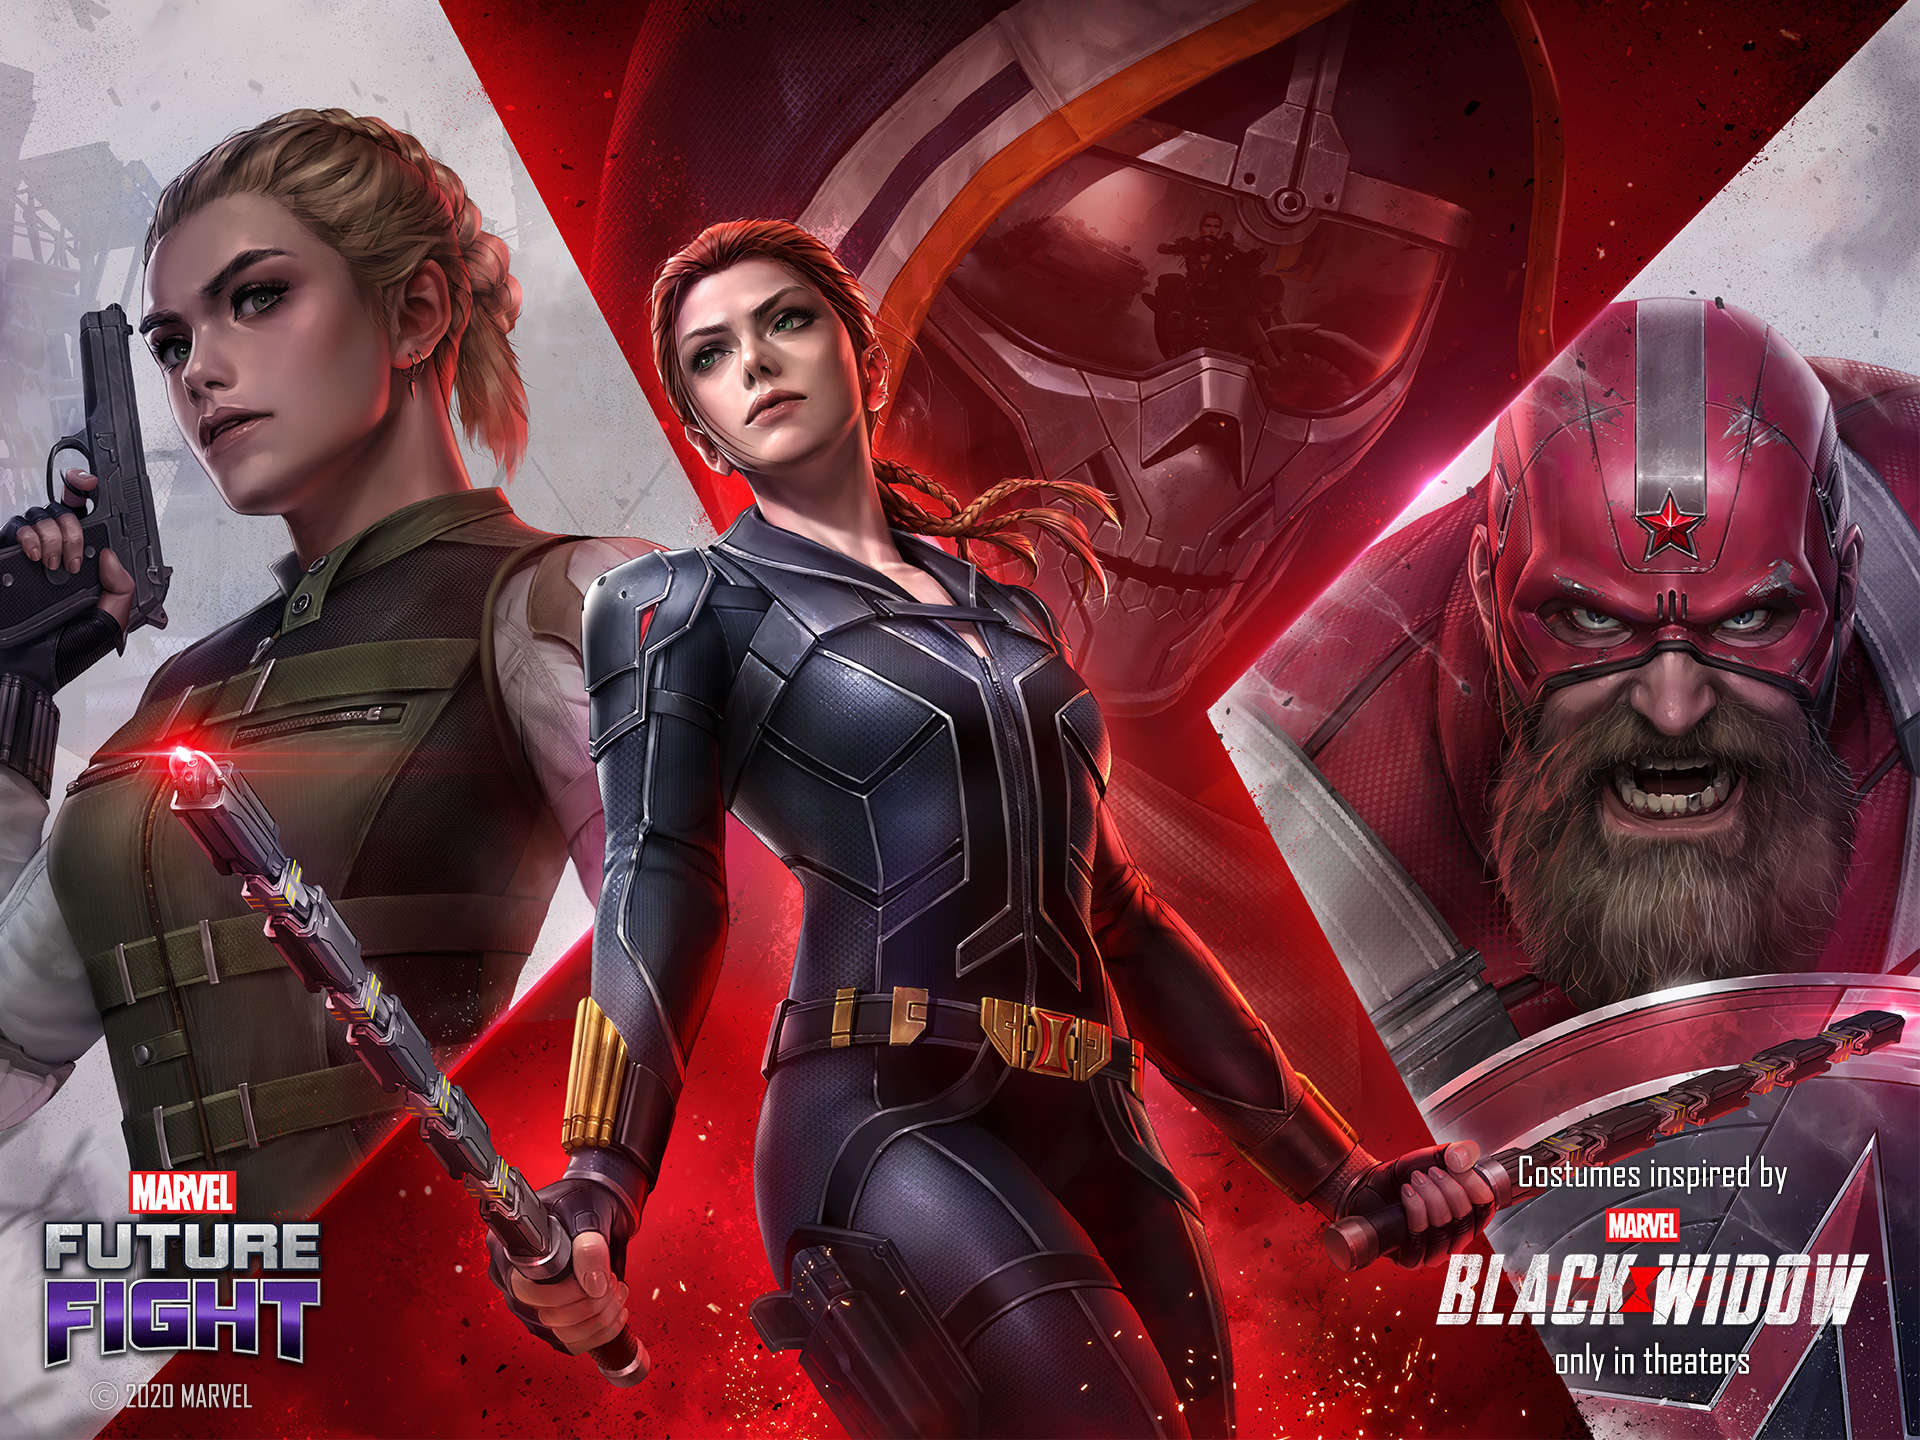 MARVEL FUTURE FIGHT CELEBRATES 5TH ANNIVERSARY WITH GREAT EVENTS AND REWARDS